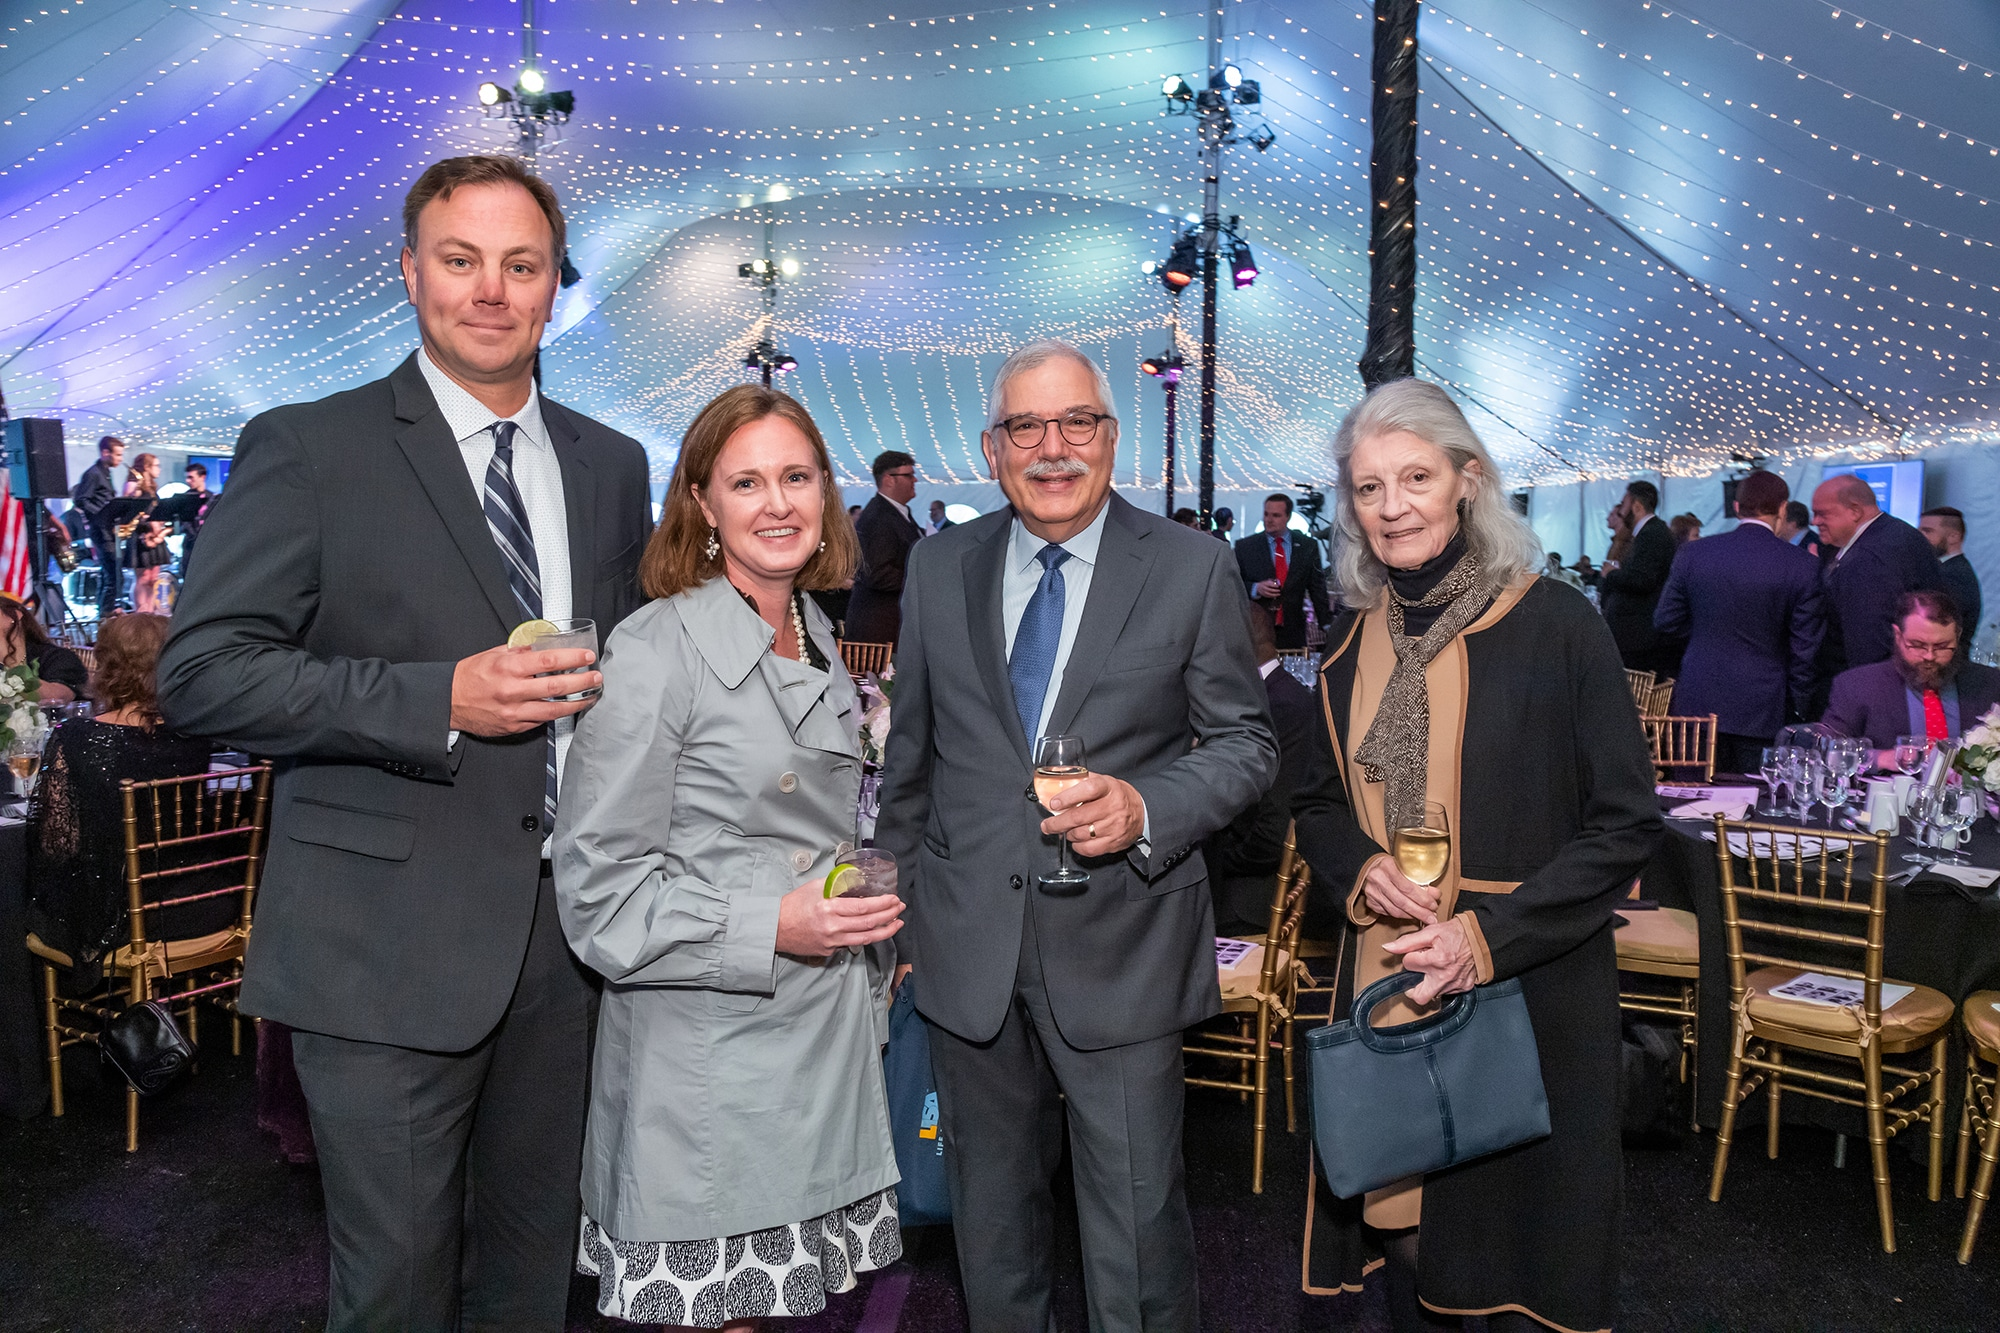 On May 9, 2019, Community Options celebrated its 30th anniversary on the campus of Princeton University at the McCarter Theatre Center Gala Tent.